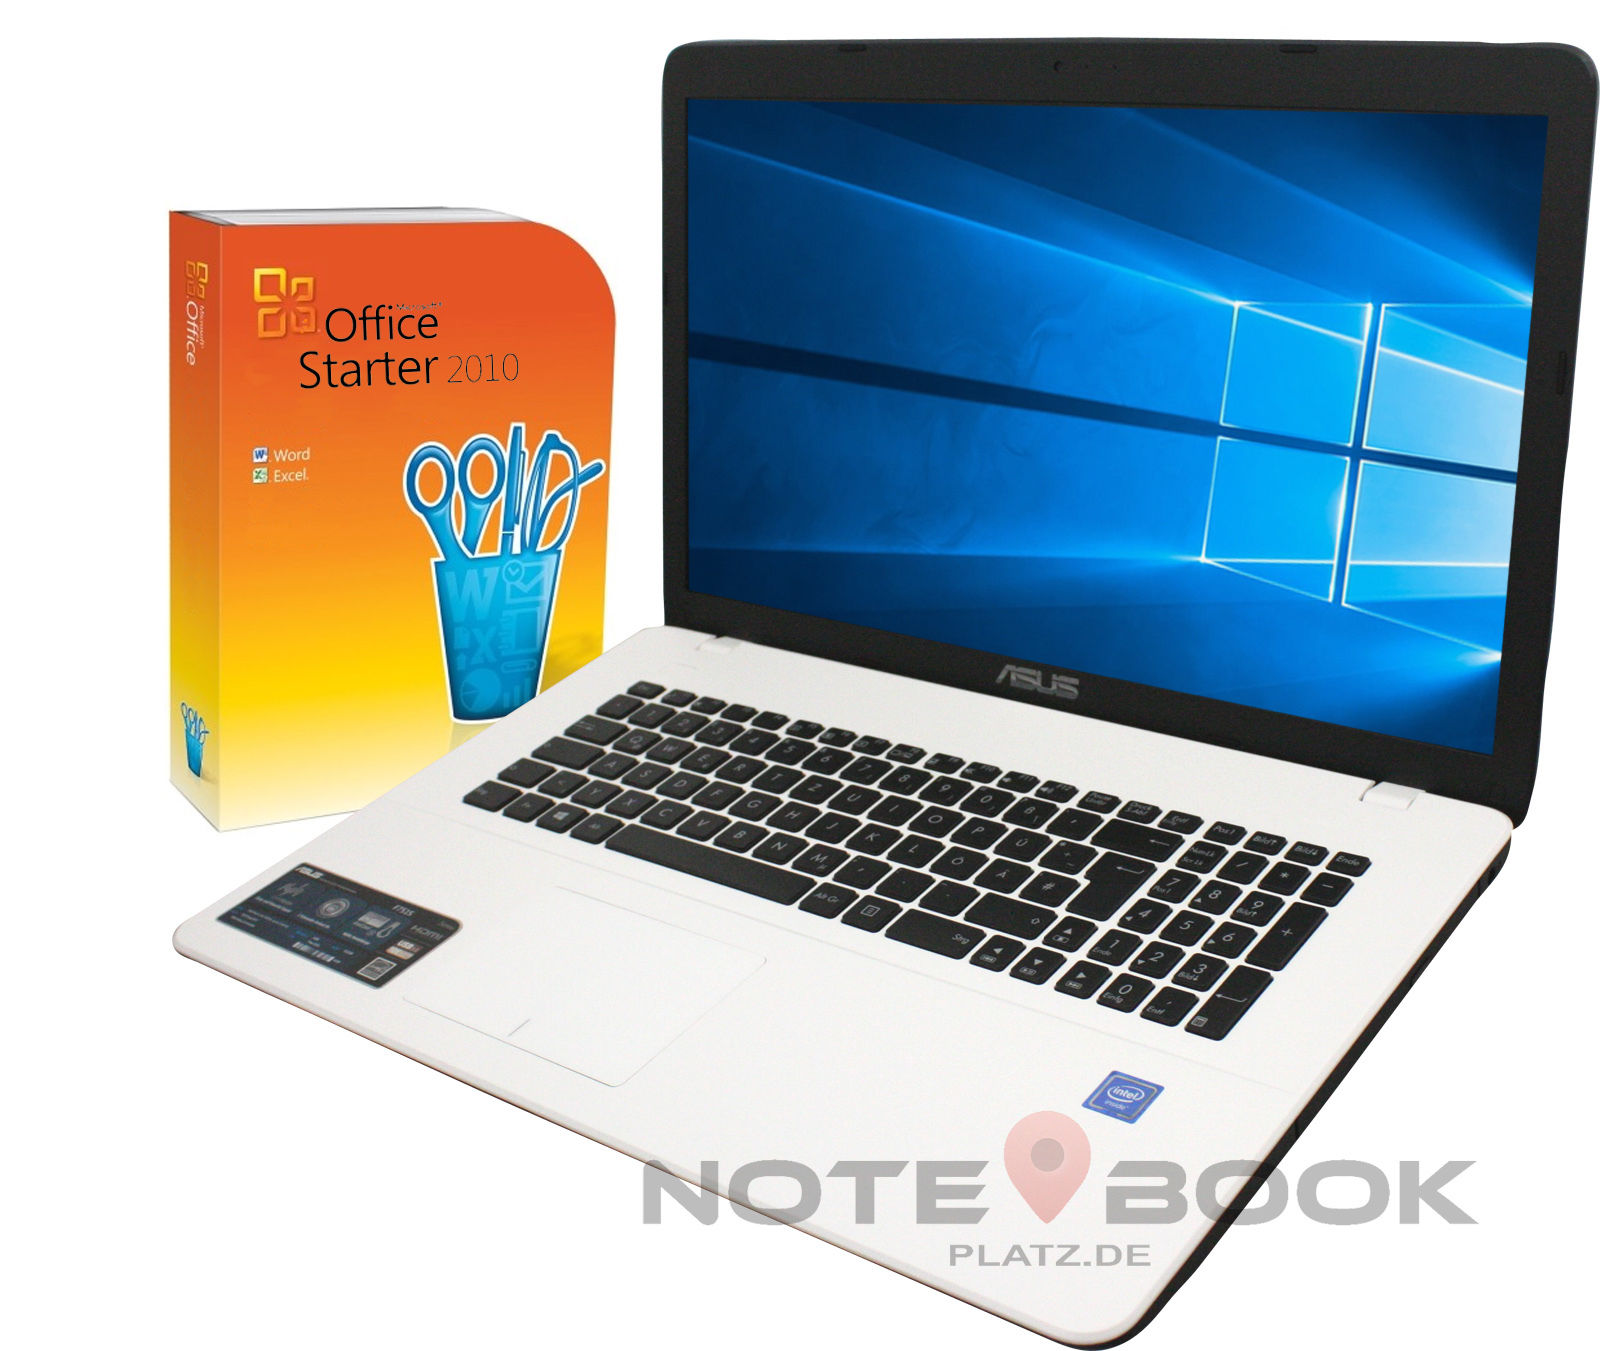 ASUS Notebook 17 Zoll - Weiß - 2 x 2,46 GHz - 1T HDD -USB 3.0- Win10 Pro- Office